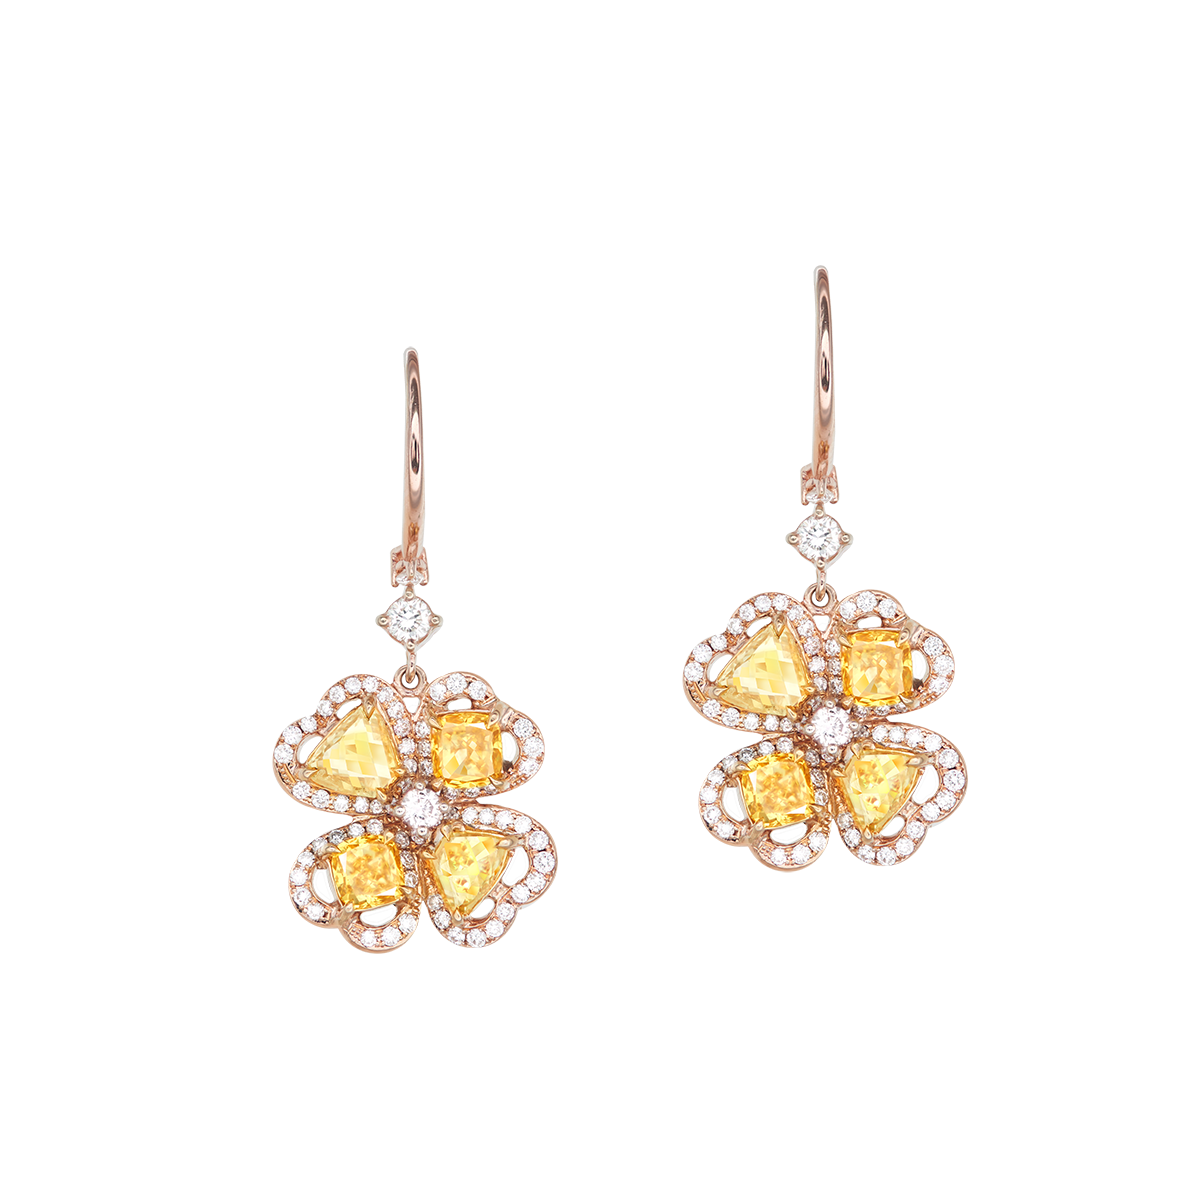 ALROSA黃鑽耳環 1.96克拉